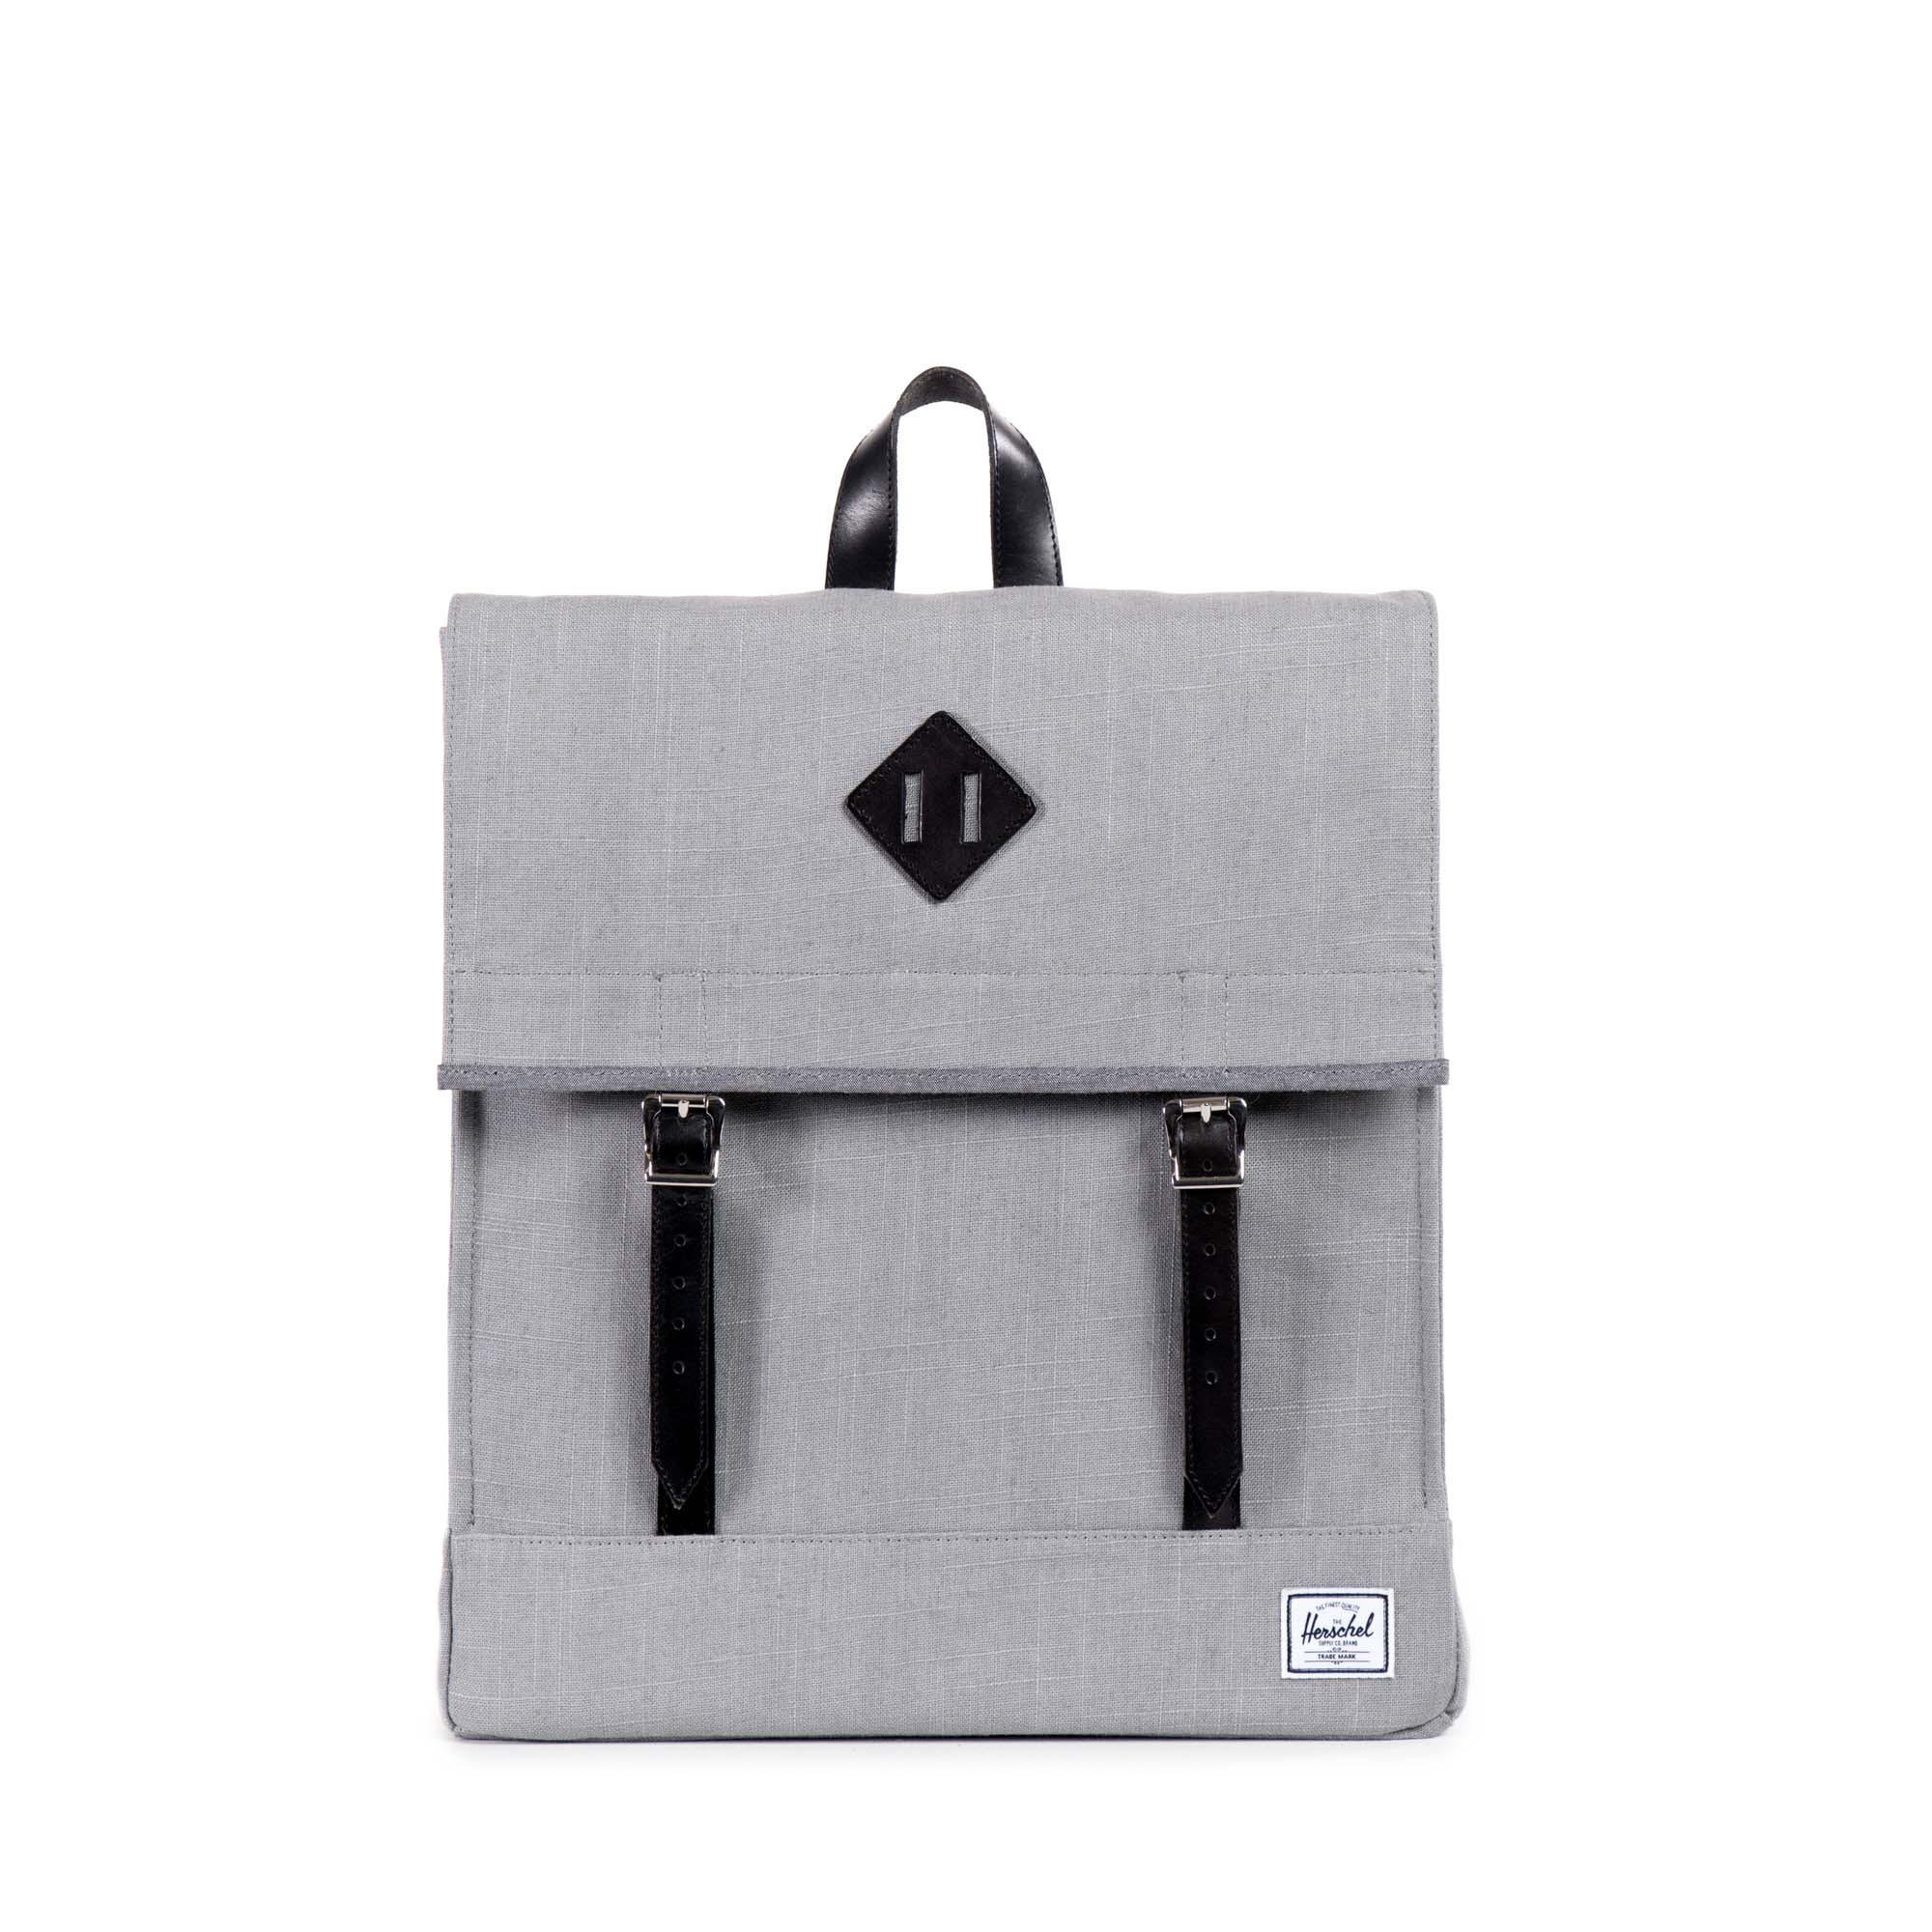 1037d86dec2 Herschel Supply Co.  Survey Backpack - from Turntable Lab